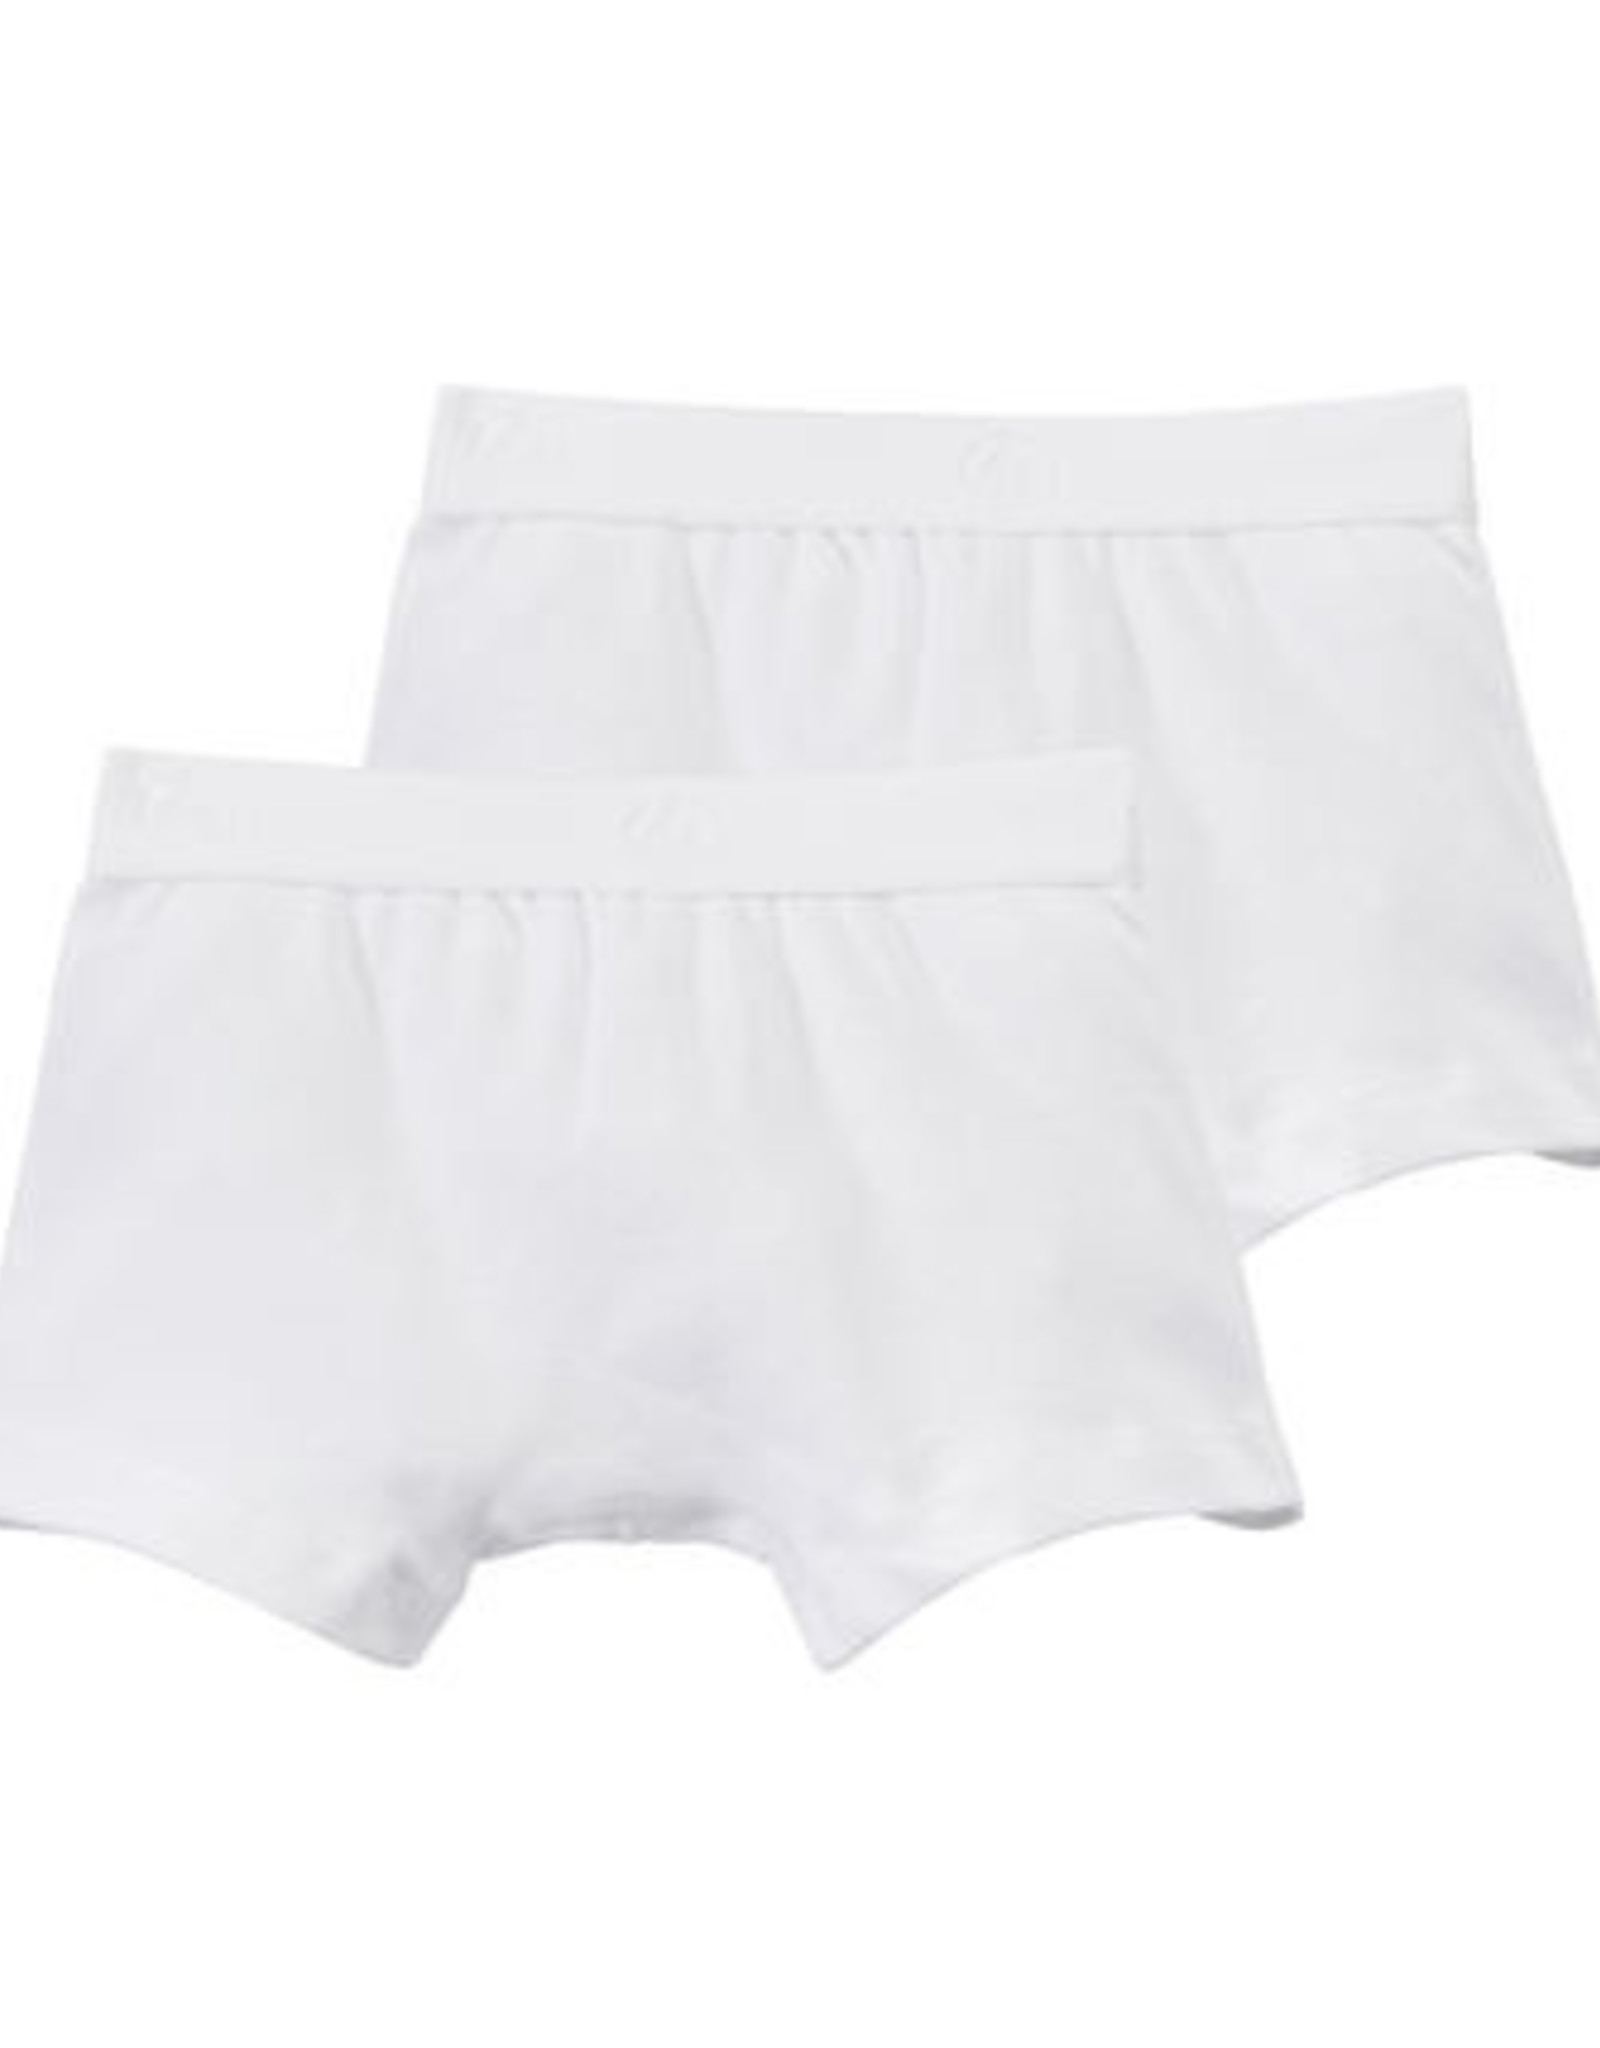 Set of 2 boxers